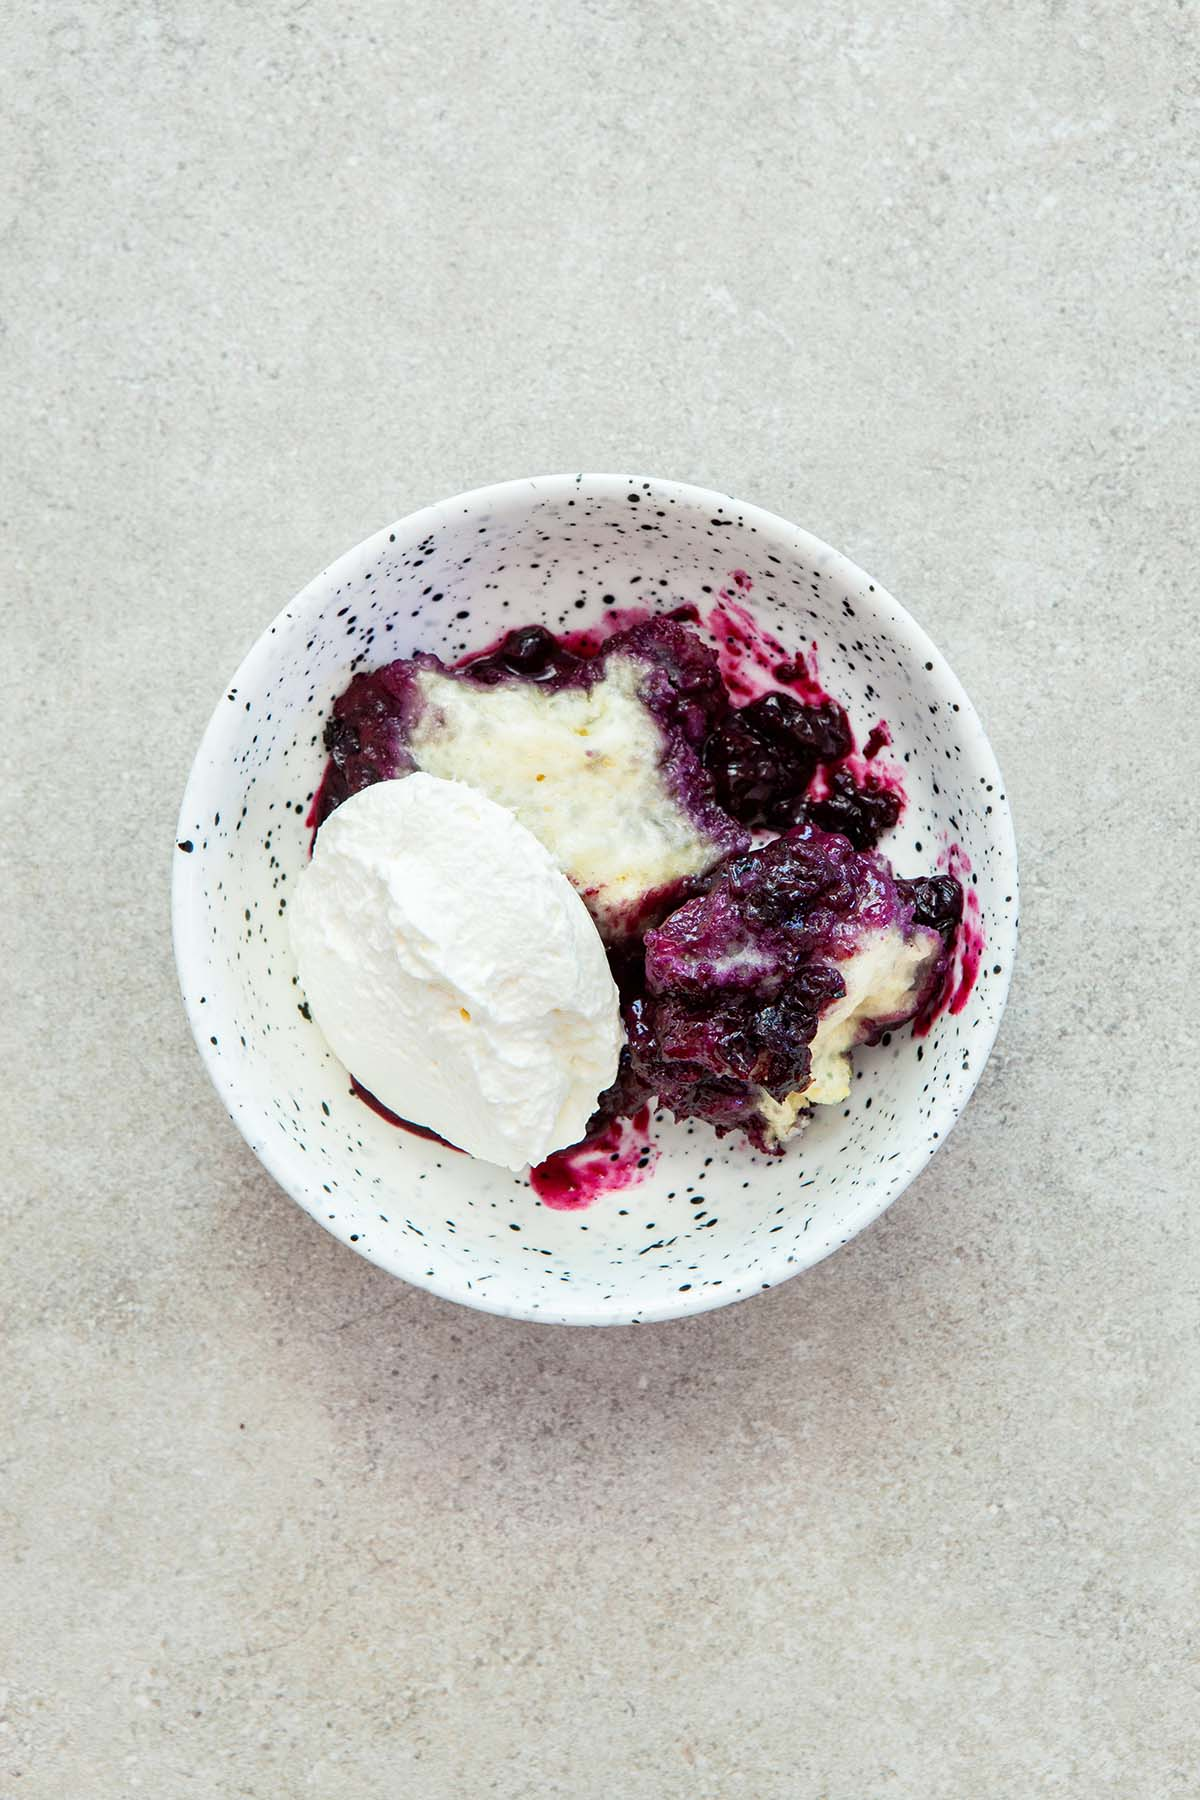 A bowl of blueberry grunt topped with whipped cream in a small white speckled bowl.